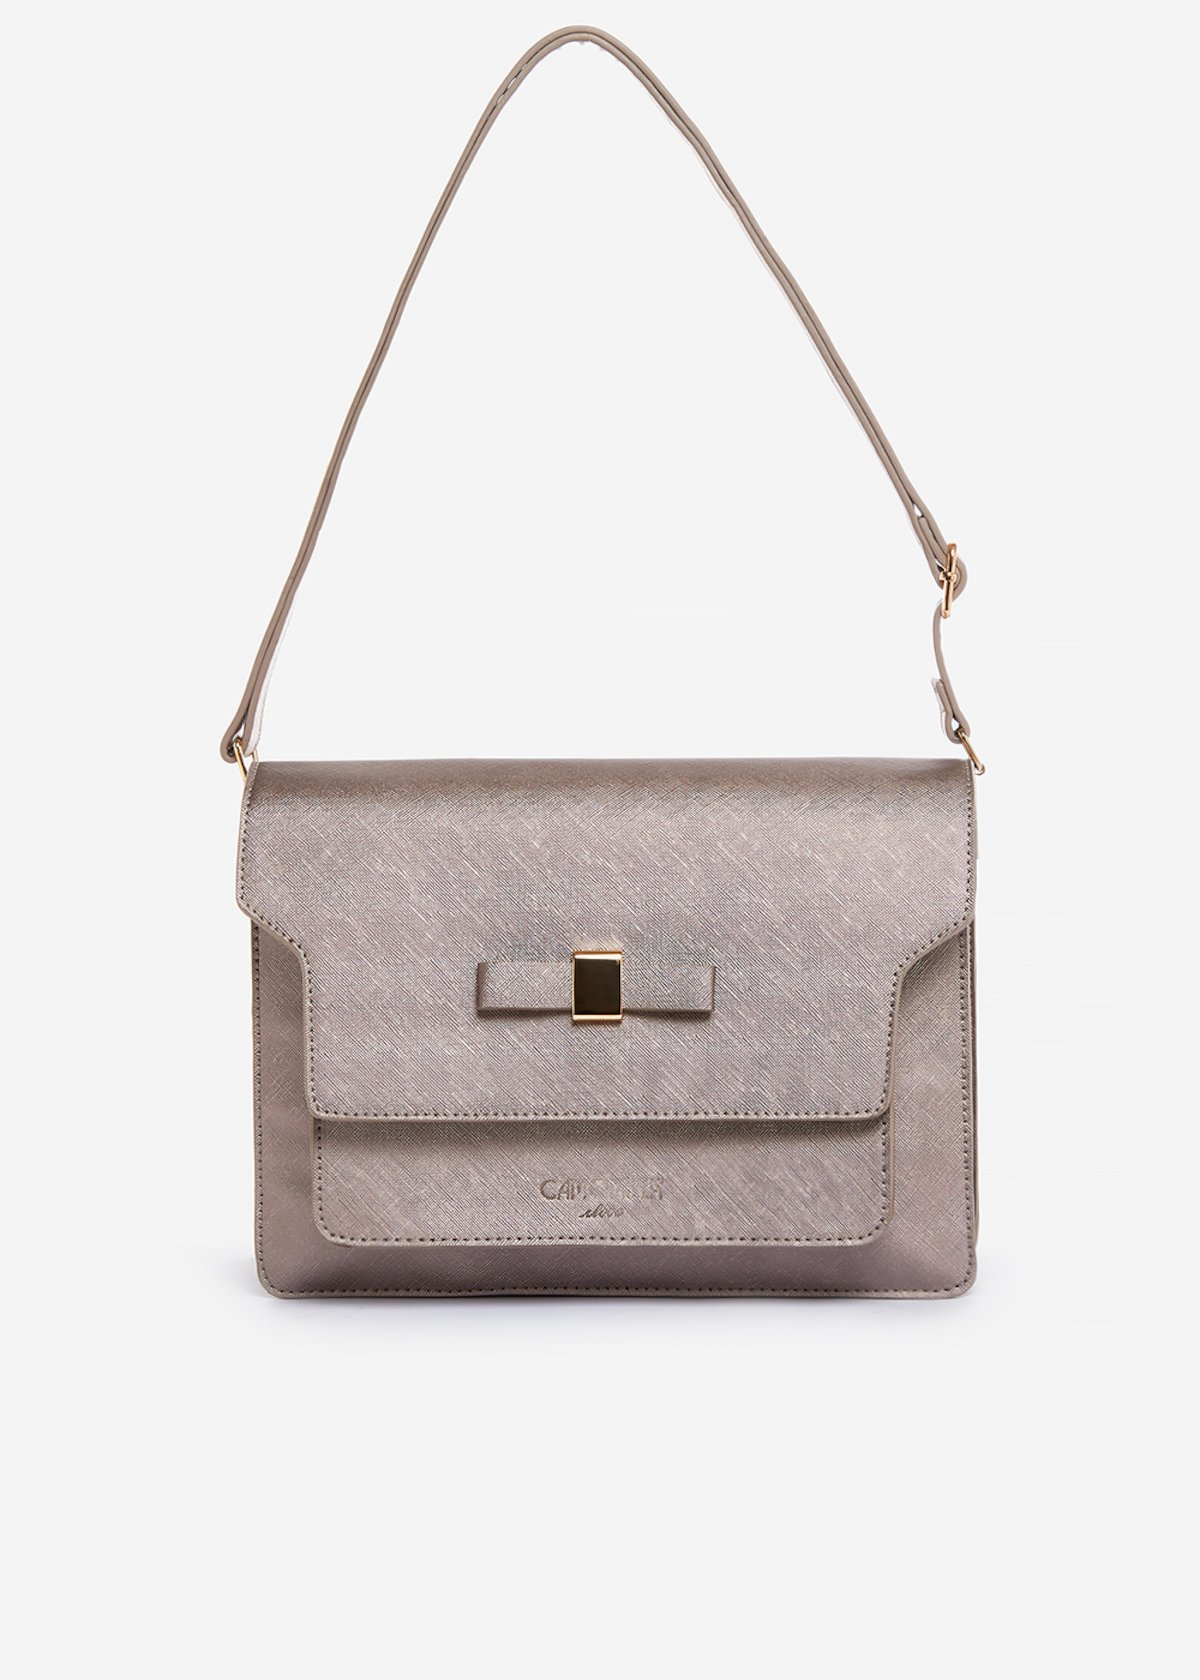 Blonda handbag of faux leather saffiano effect with bow detail - Rosa